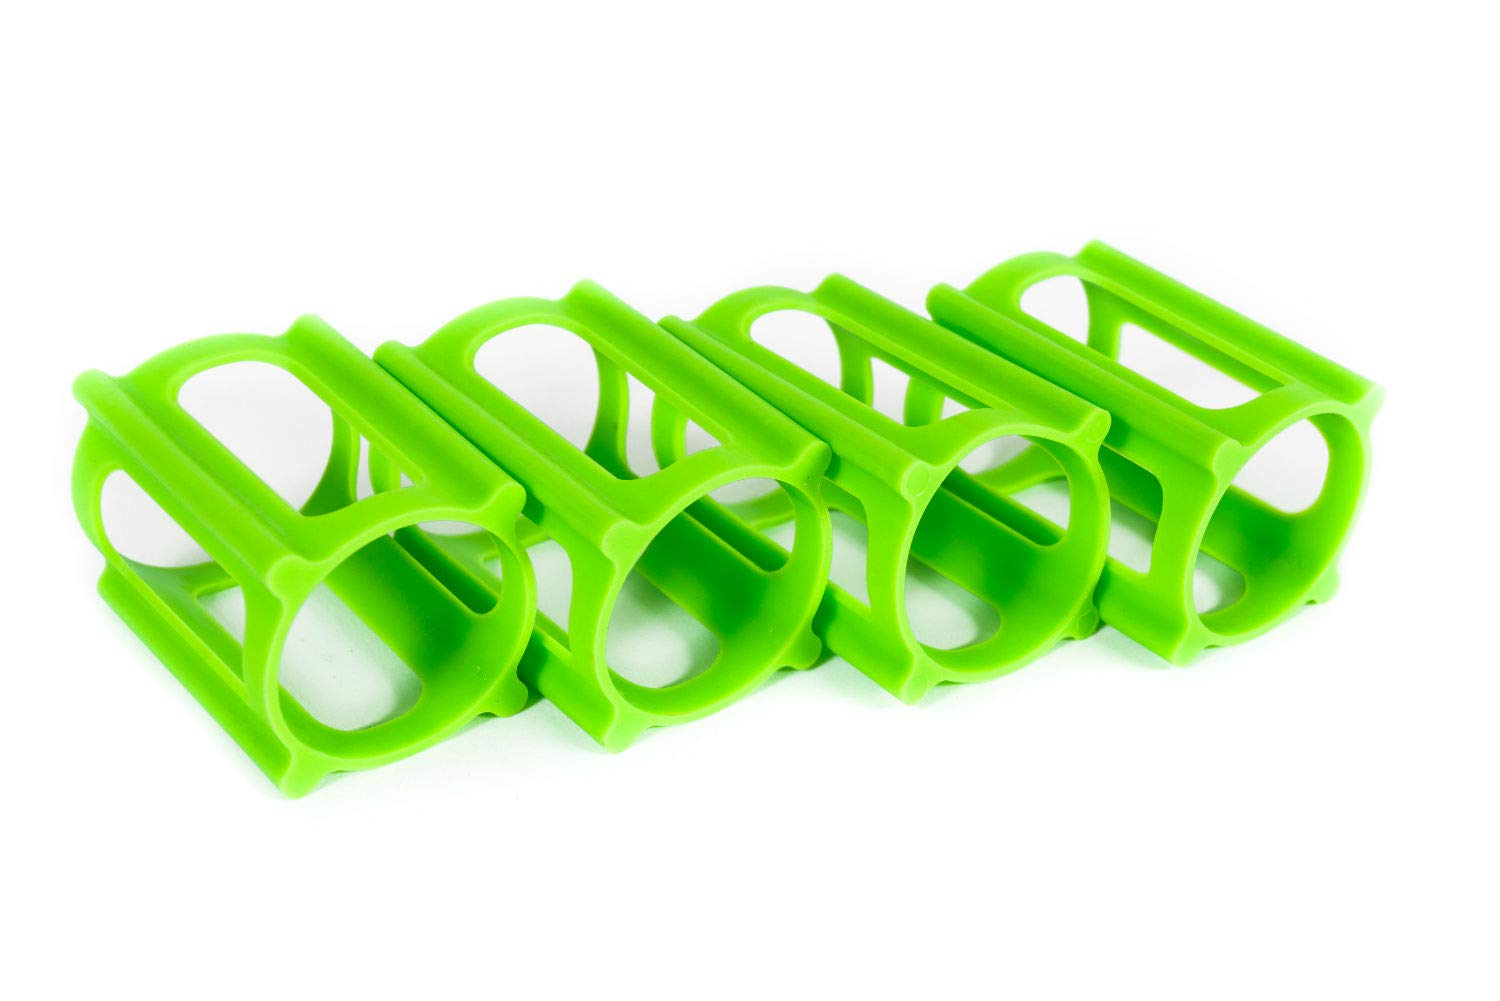 SkaterTrainer The Official Skater Trainers | Patented Accessories for Skateboards Wheels | Engineered and Made in USA (Neon Green) by SkaterTrainer